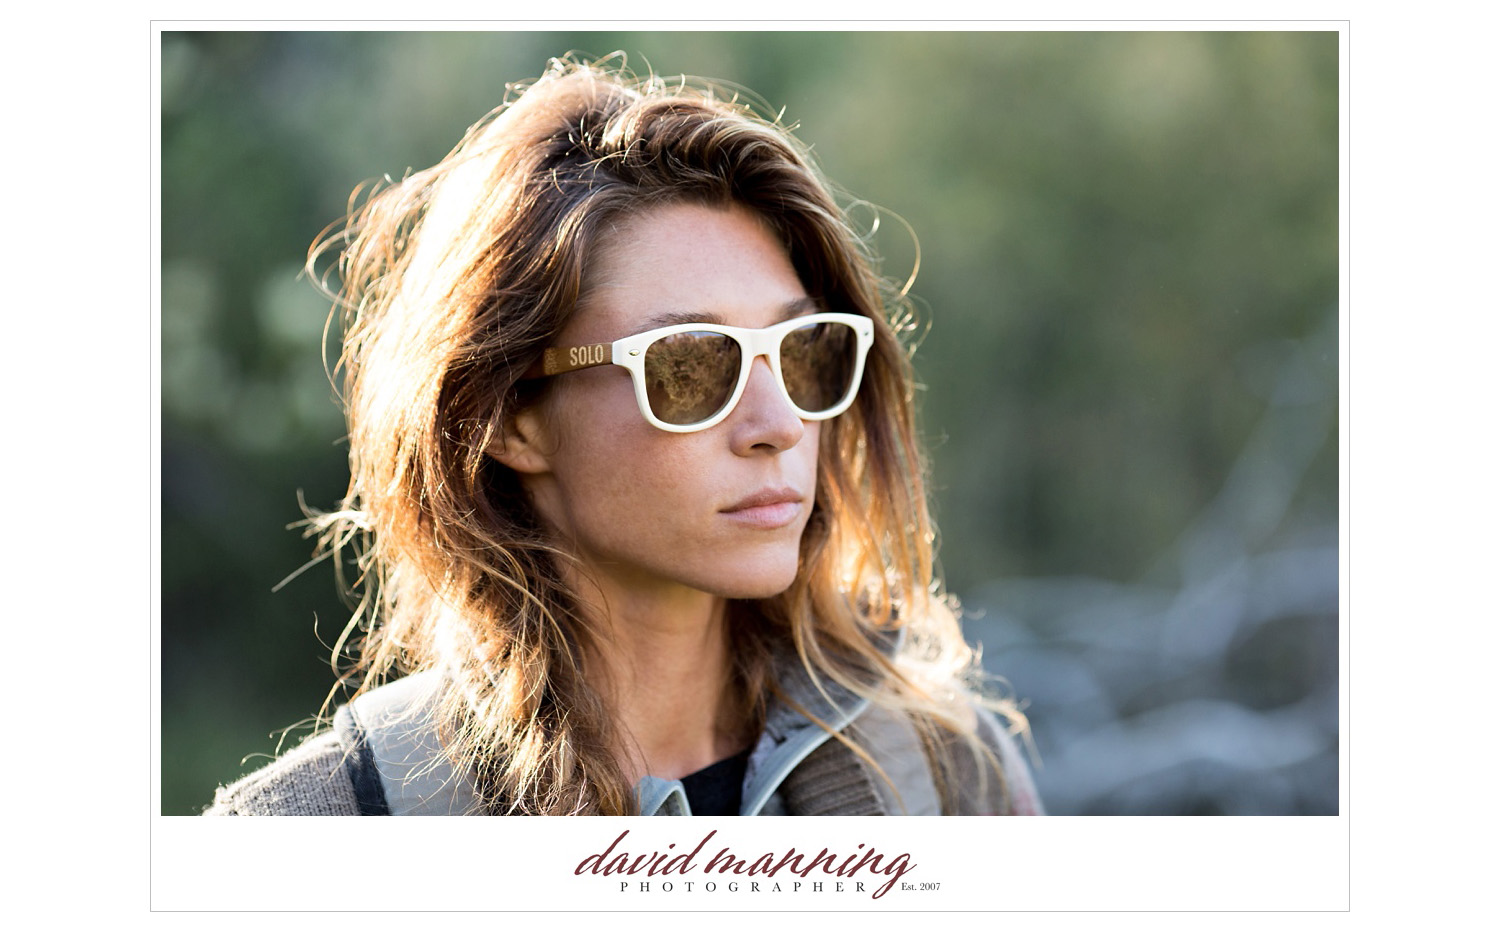 SOLO-Eyewear--Commercial-Editorial-Photos-David-Manning-Photographers-0026.jpg